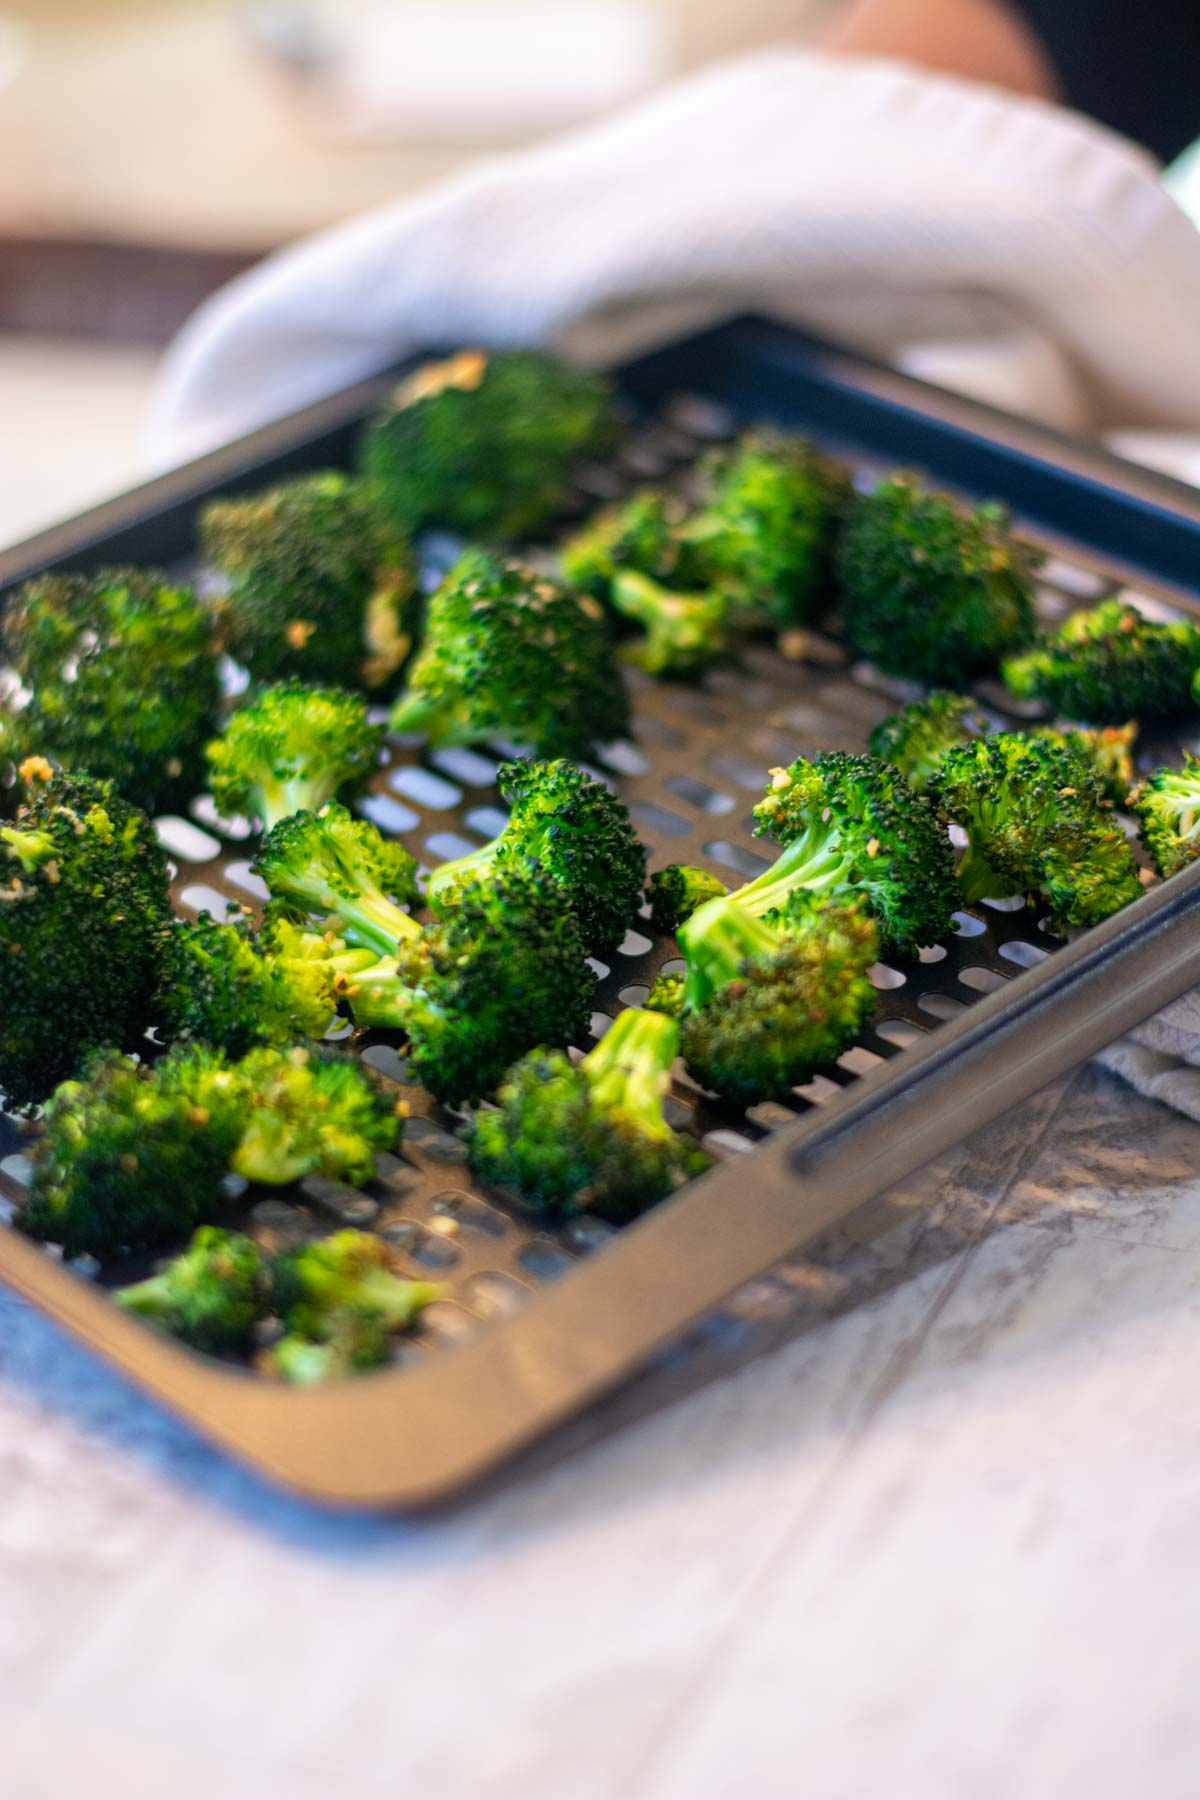 crispy broccoli on an air fryer tray on the counter.